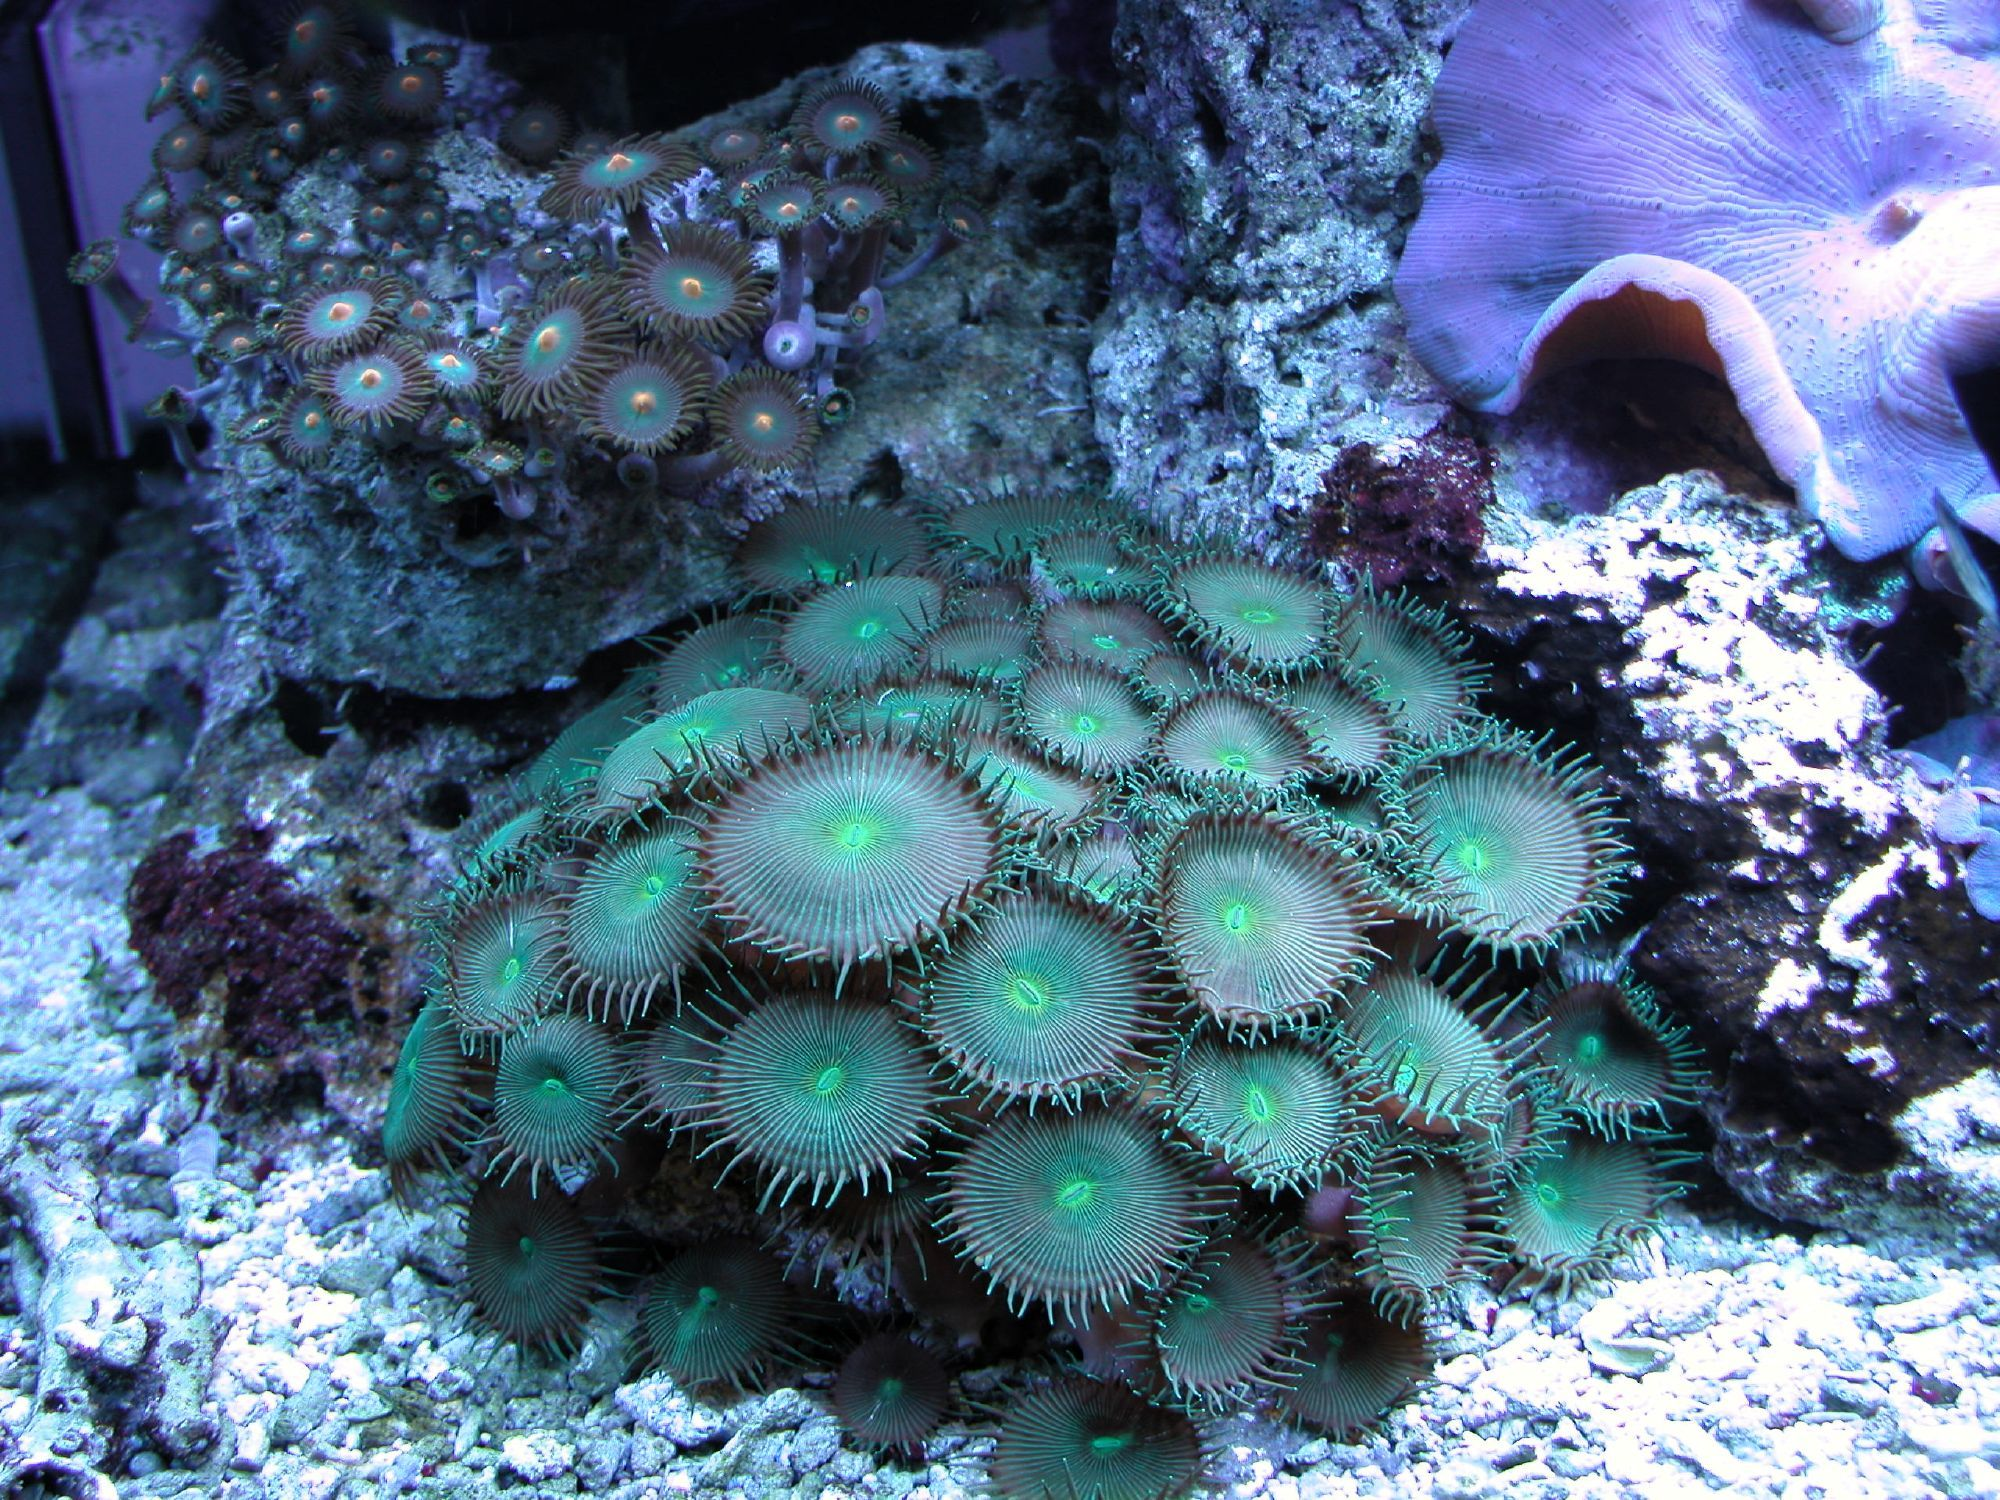 the diversity of corals is amazing